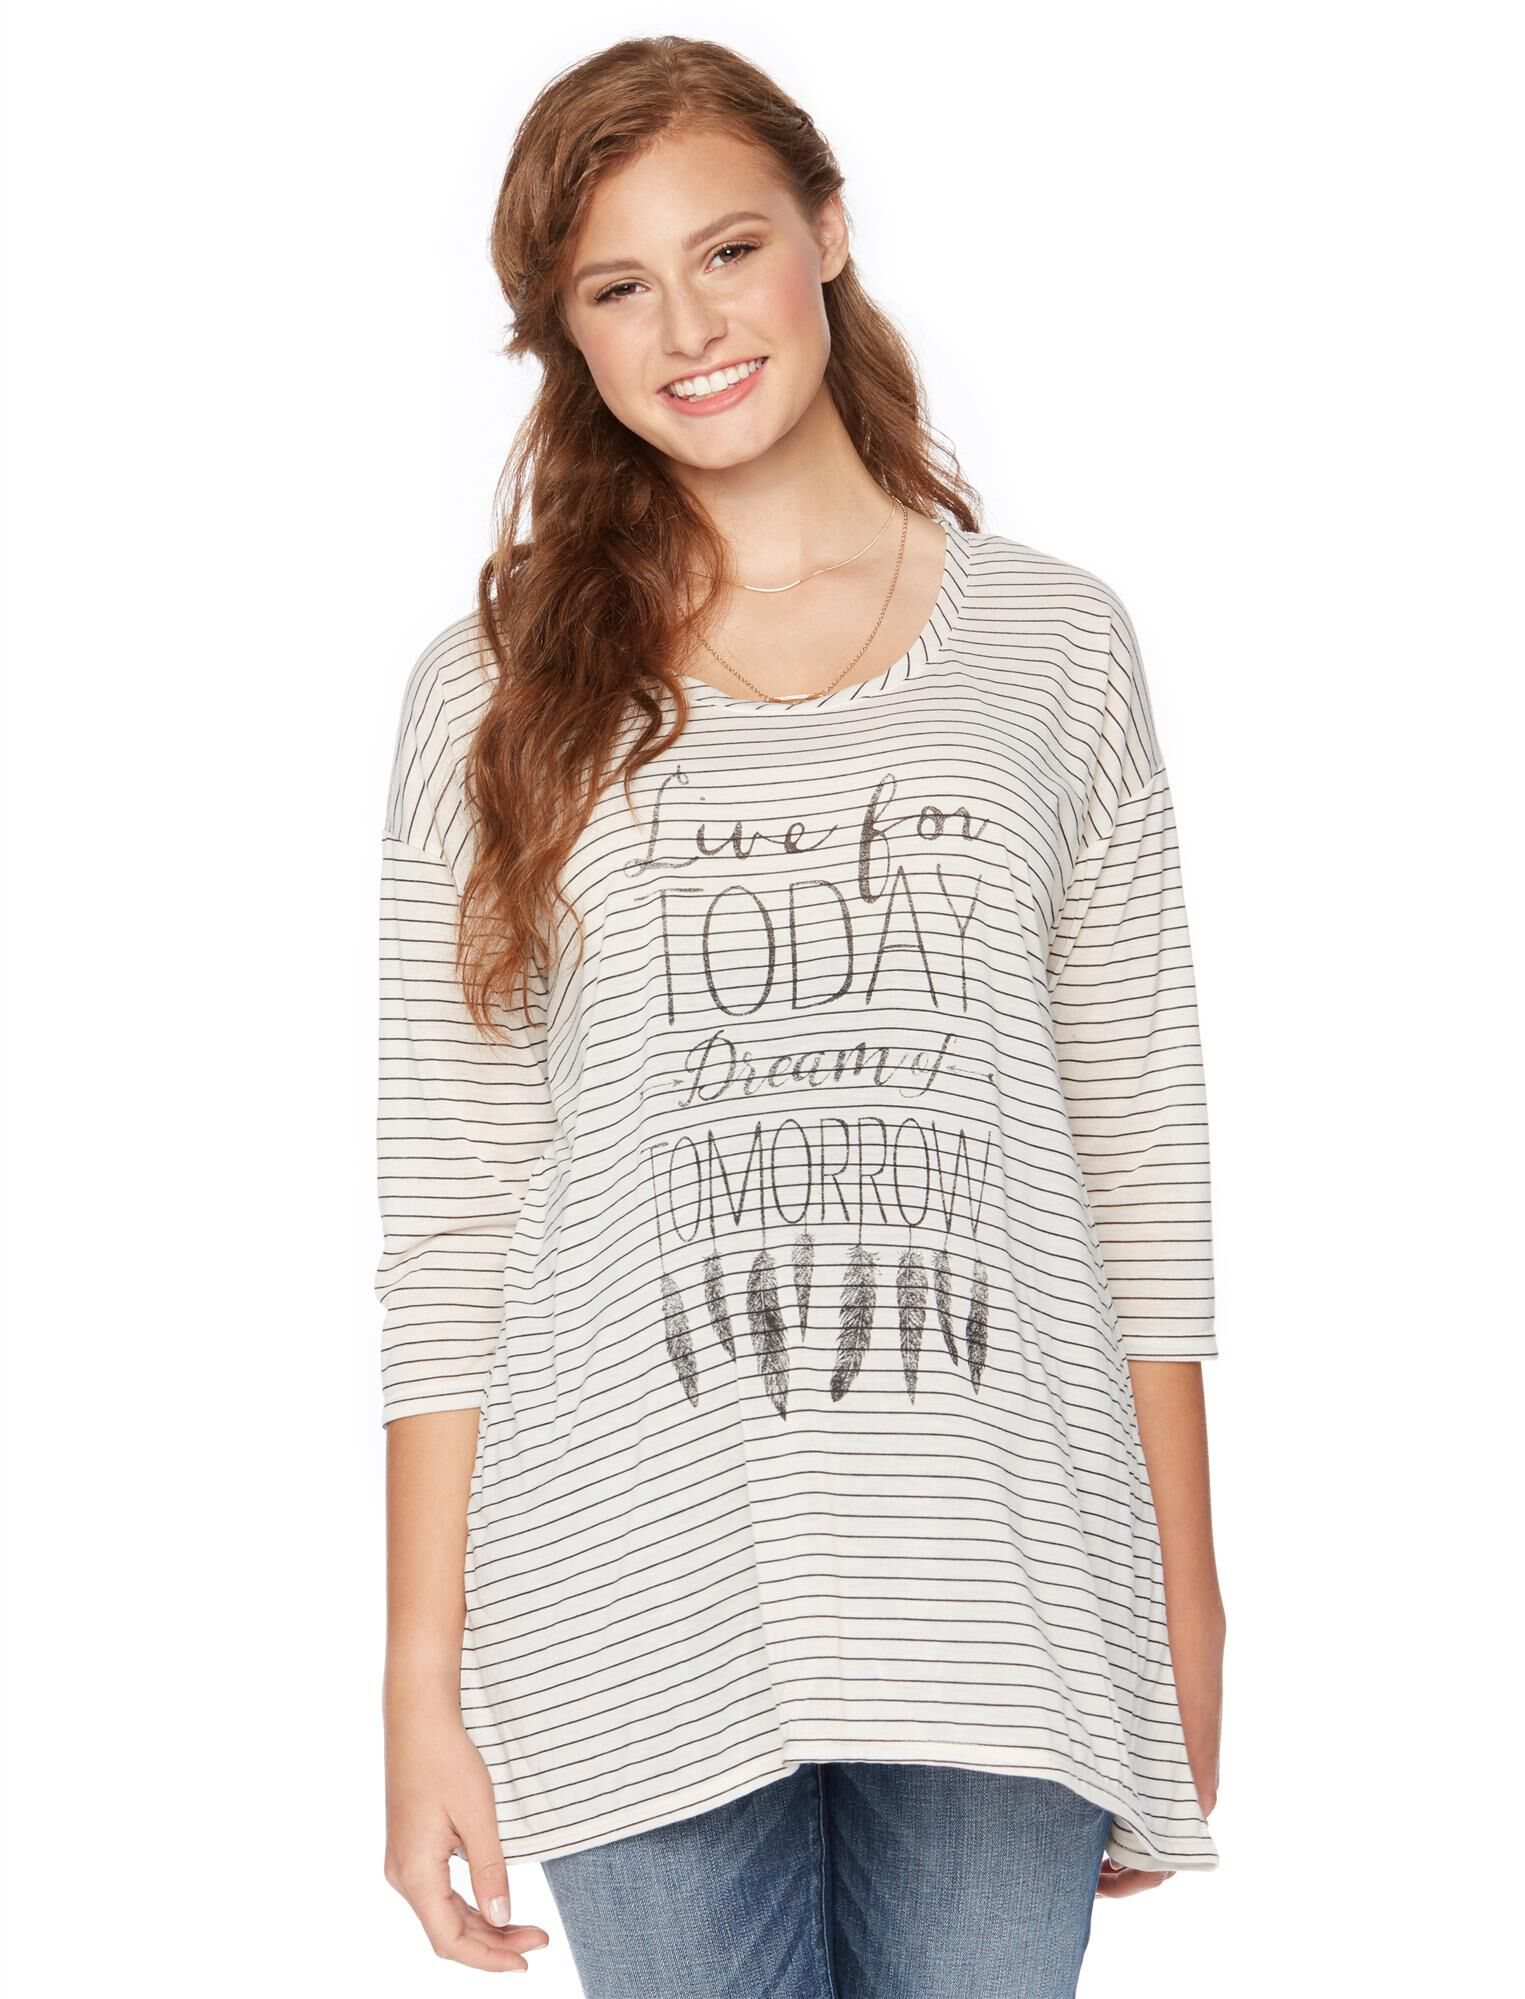 Wendy Bellissimo Live for Today Dream for Tomorrow Maternity Top